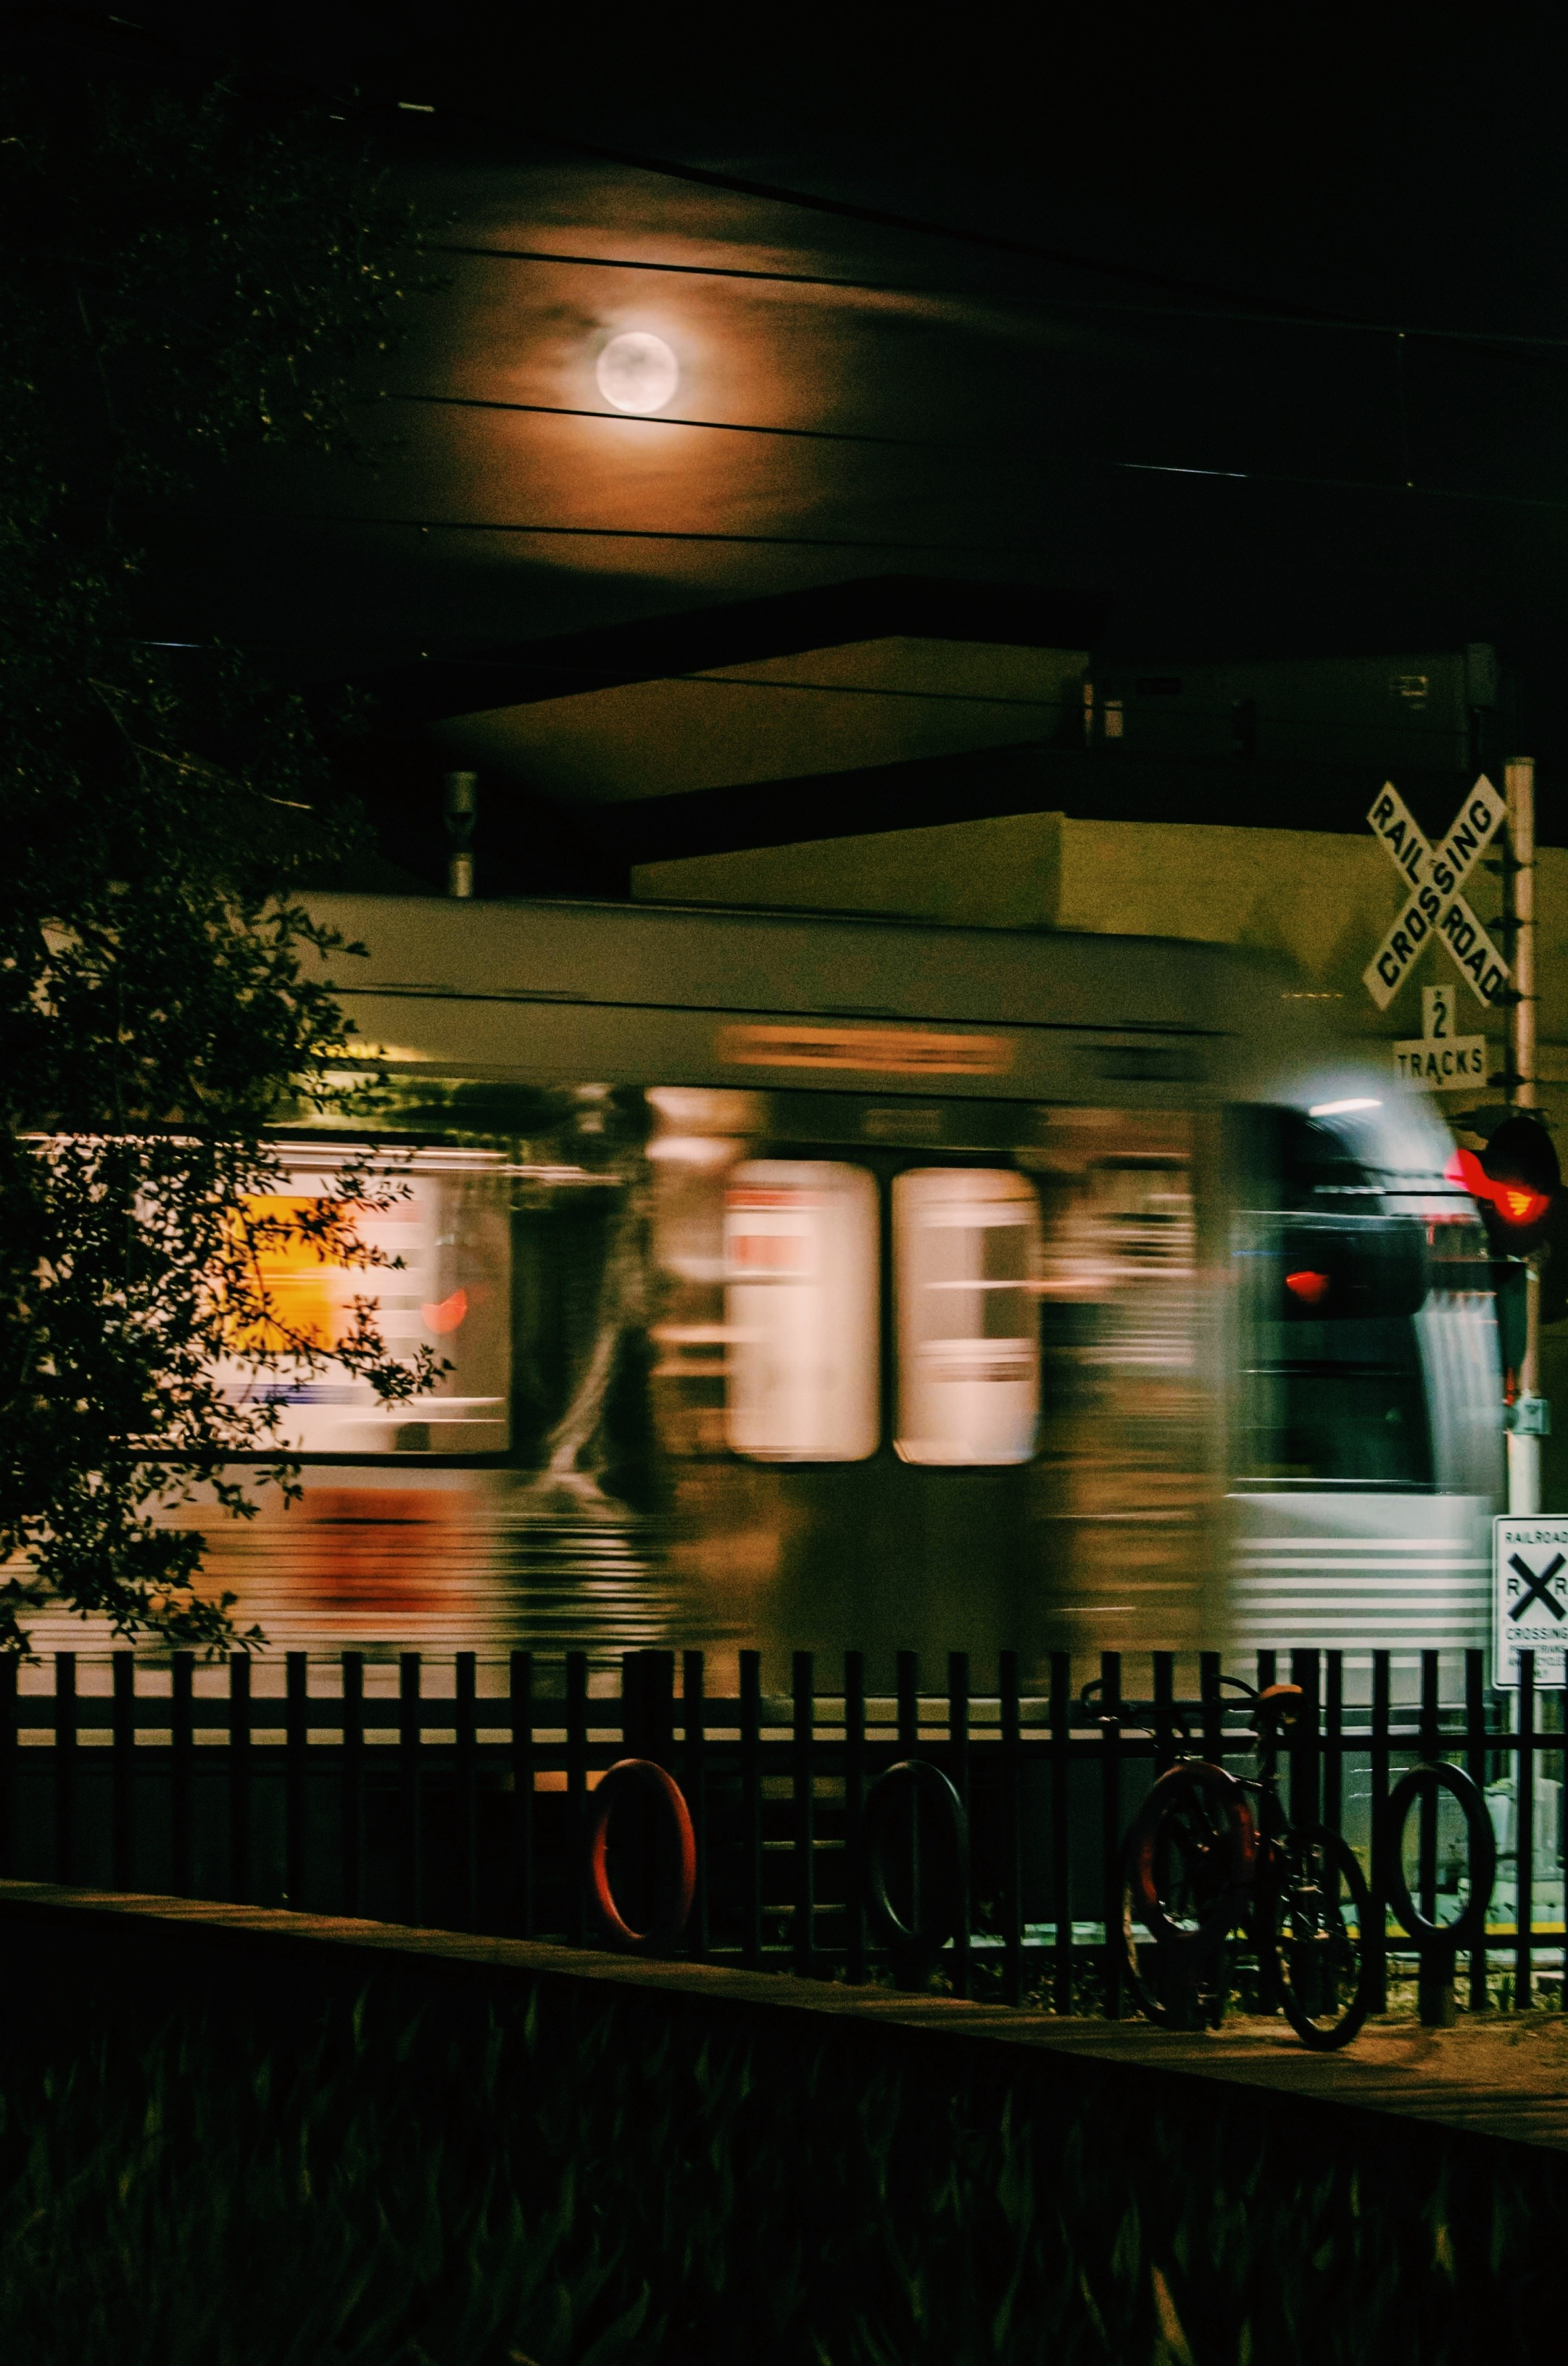 ART OF TRANSIT: I accepted my own Metro Full Moon Challenge and came up with this un-good shot taken at the Gold Line's Fillmore station in Pasadena last night. The Source gladly accepts photos of the full moon over Metro buses, trains or other facilities.